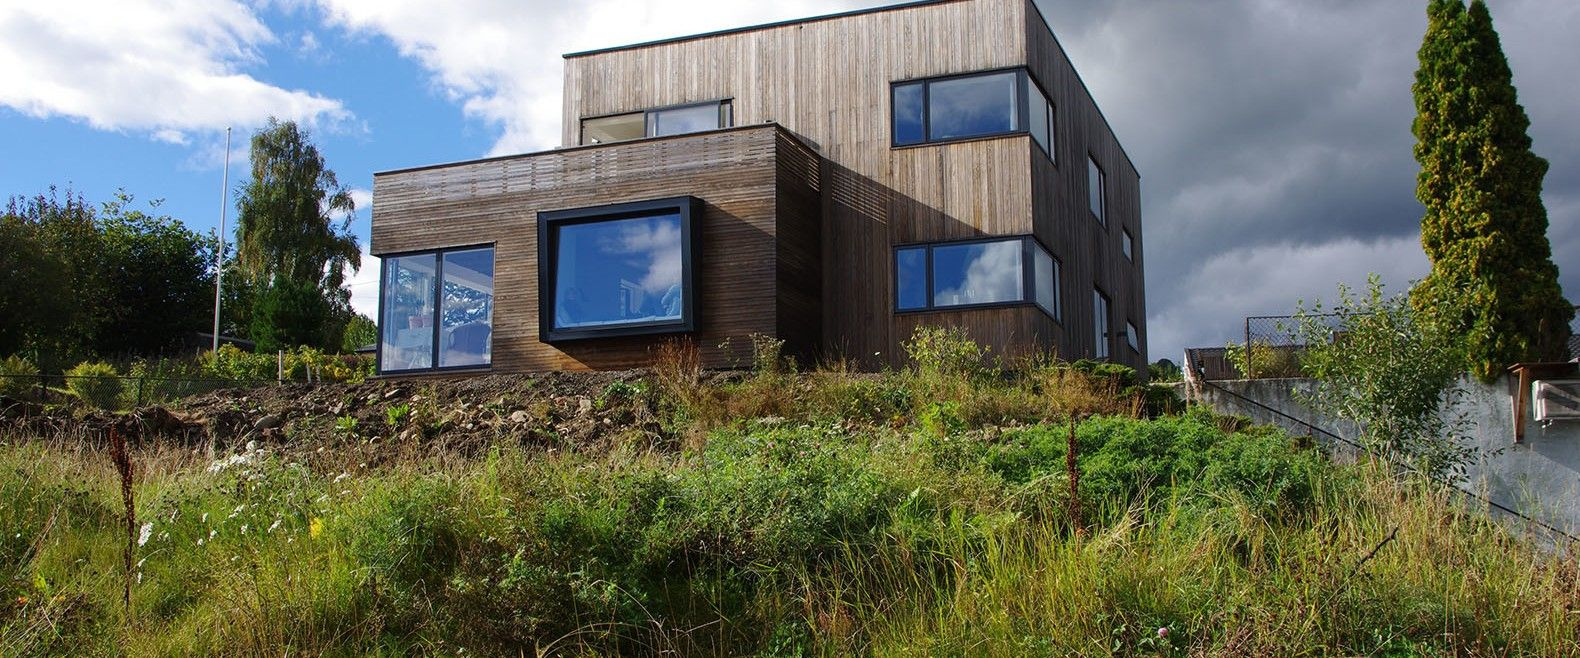 76 Year Old Funkis Home In Norway Gets A Passive House Makeover Hus Tak Vinduer